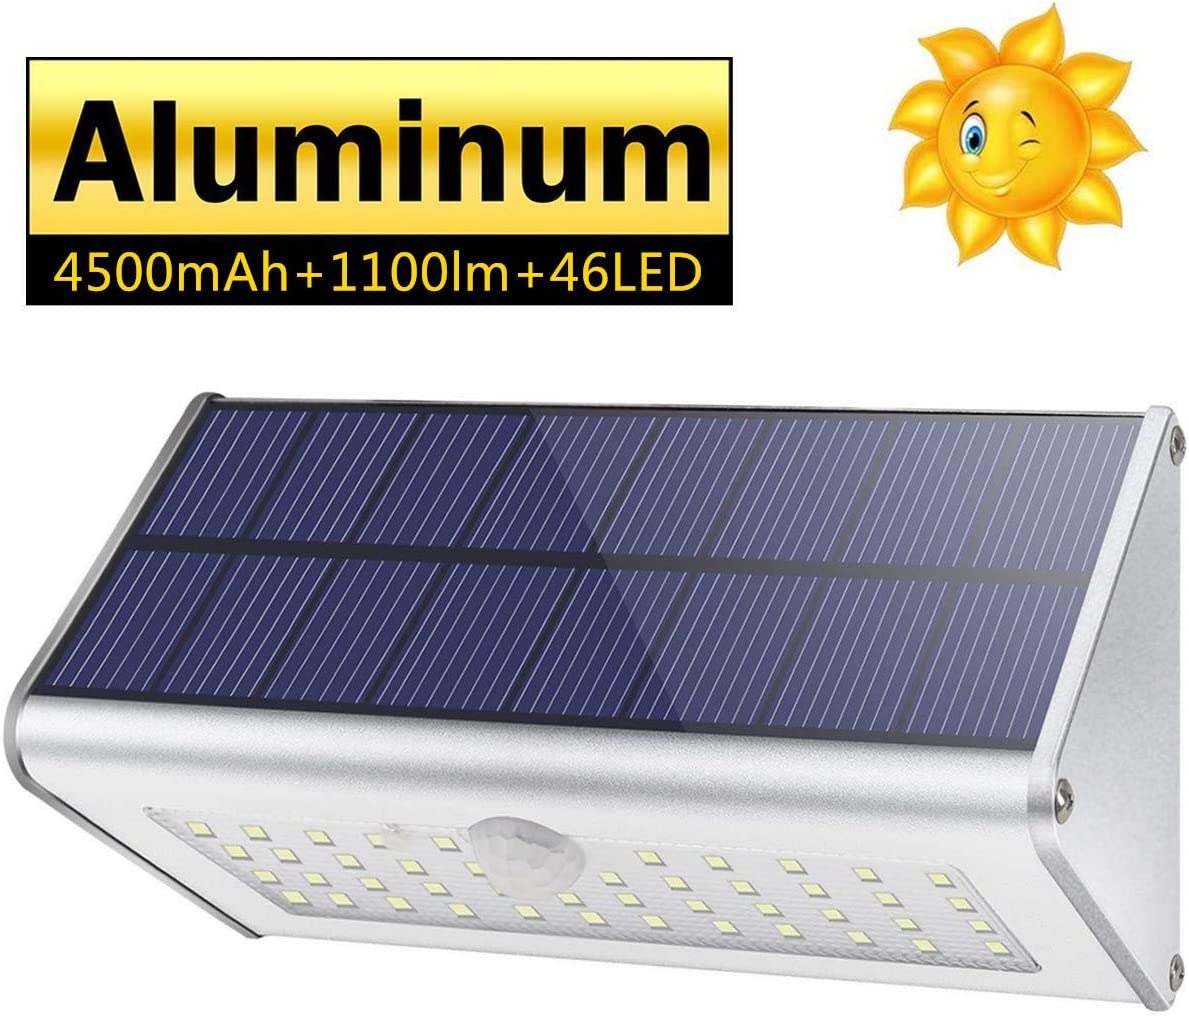 CAIYUE Solar Outdoor Lights 4500mAh Aluminum Alloy 1100lm Super Bright 120 Infrared Motion Sensor, Waterproof IP65 Security Lights, 4 Mode, for Garage, Stairway, Gate, Fence – Warm Light